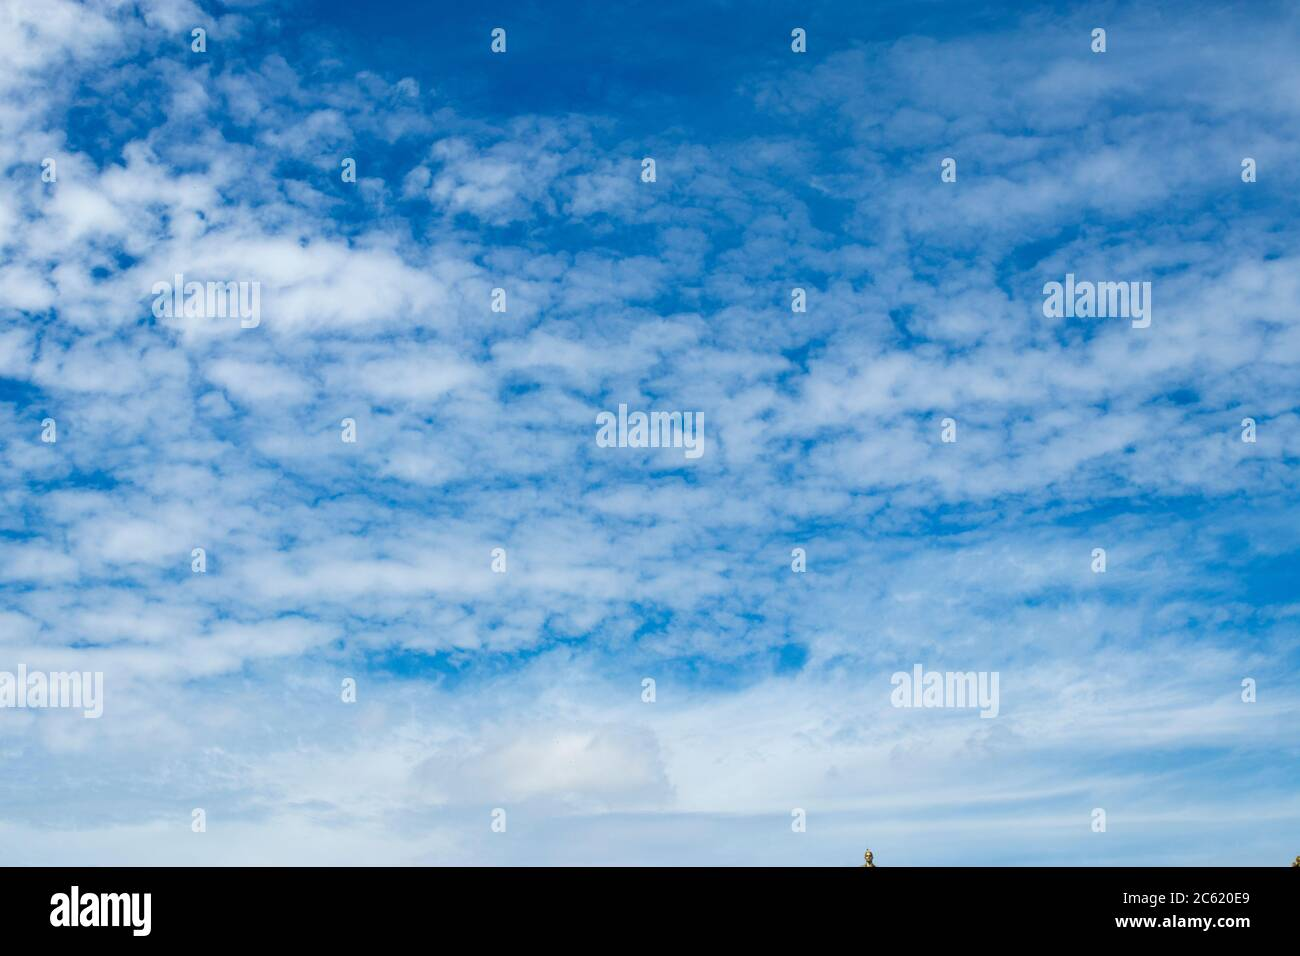 White Clouds On The Blue Sky In The Summer Sky Texture Stock Photo Alamy